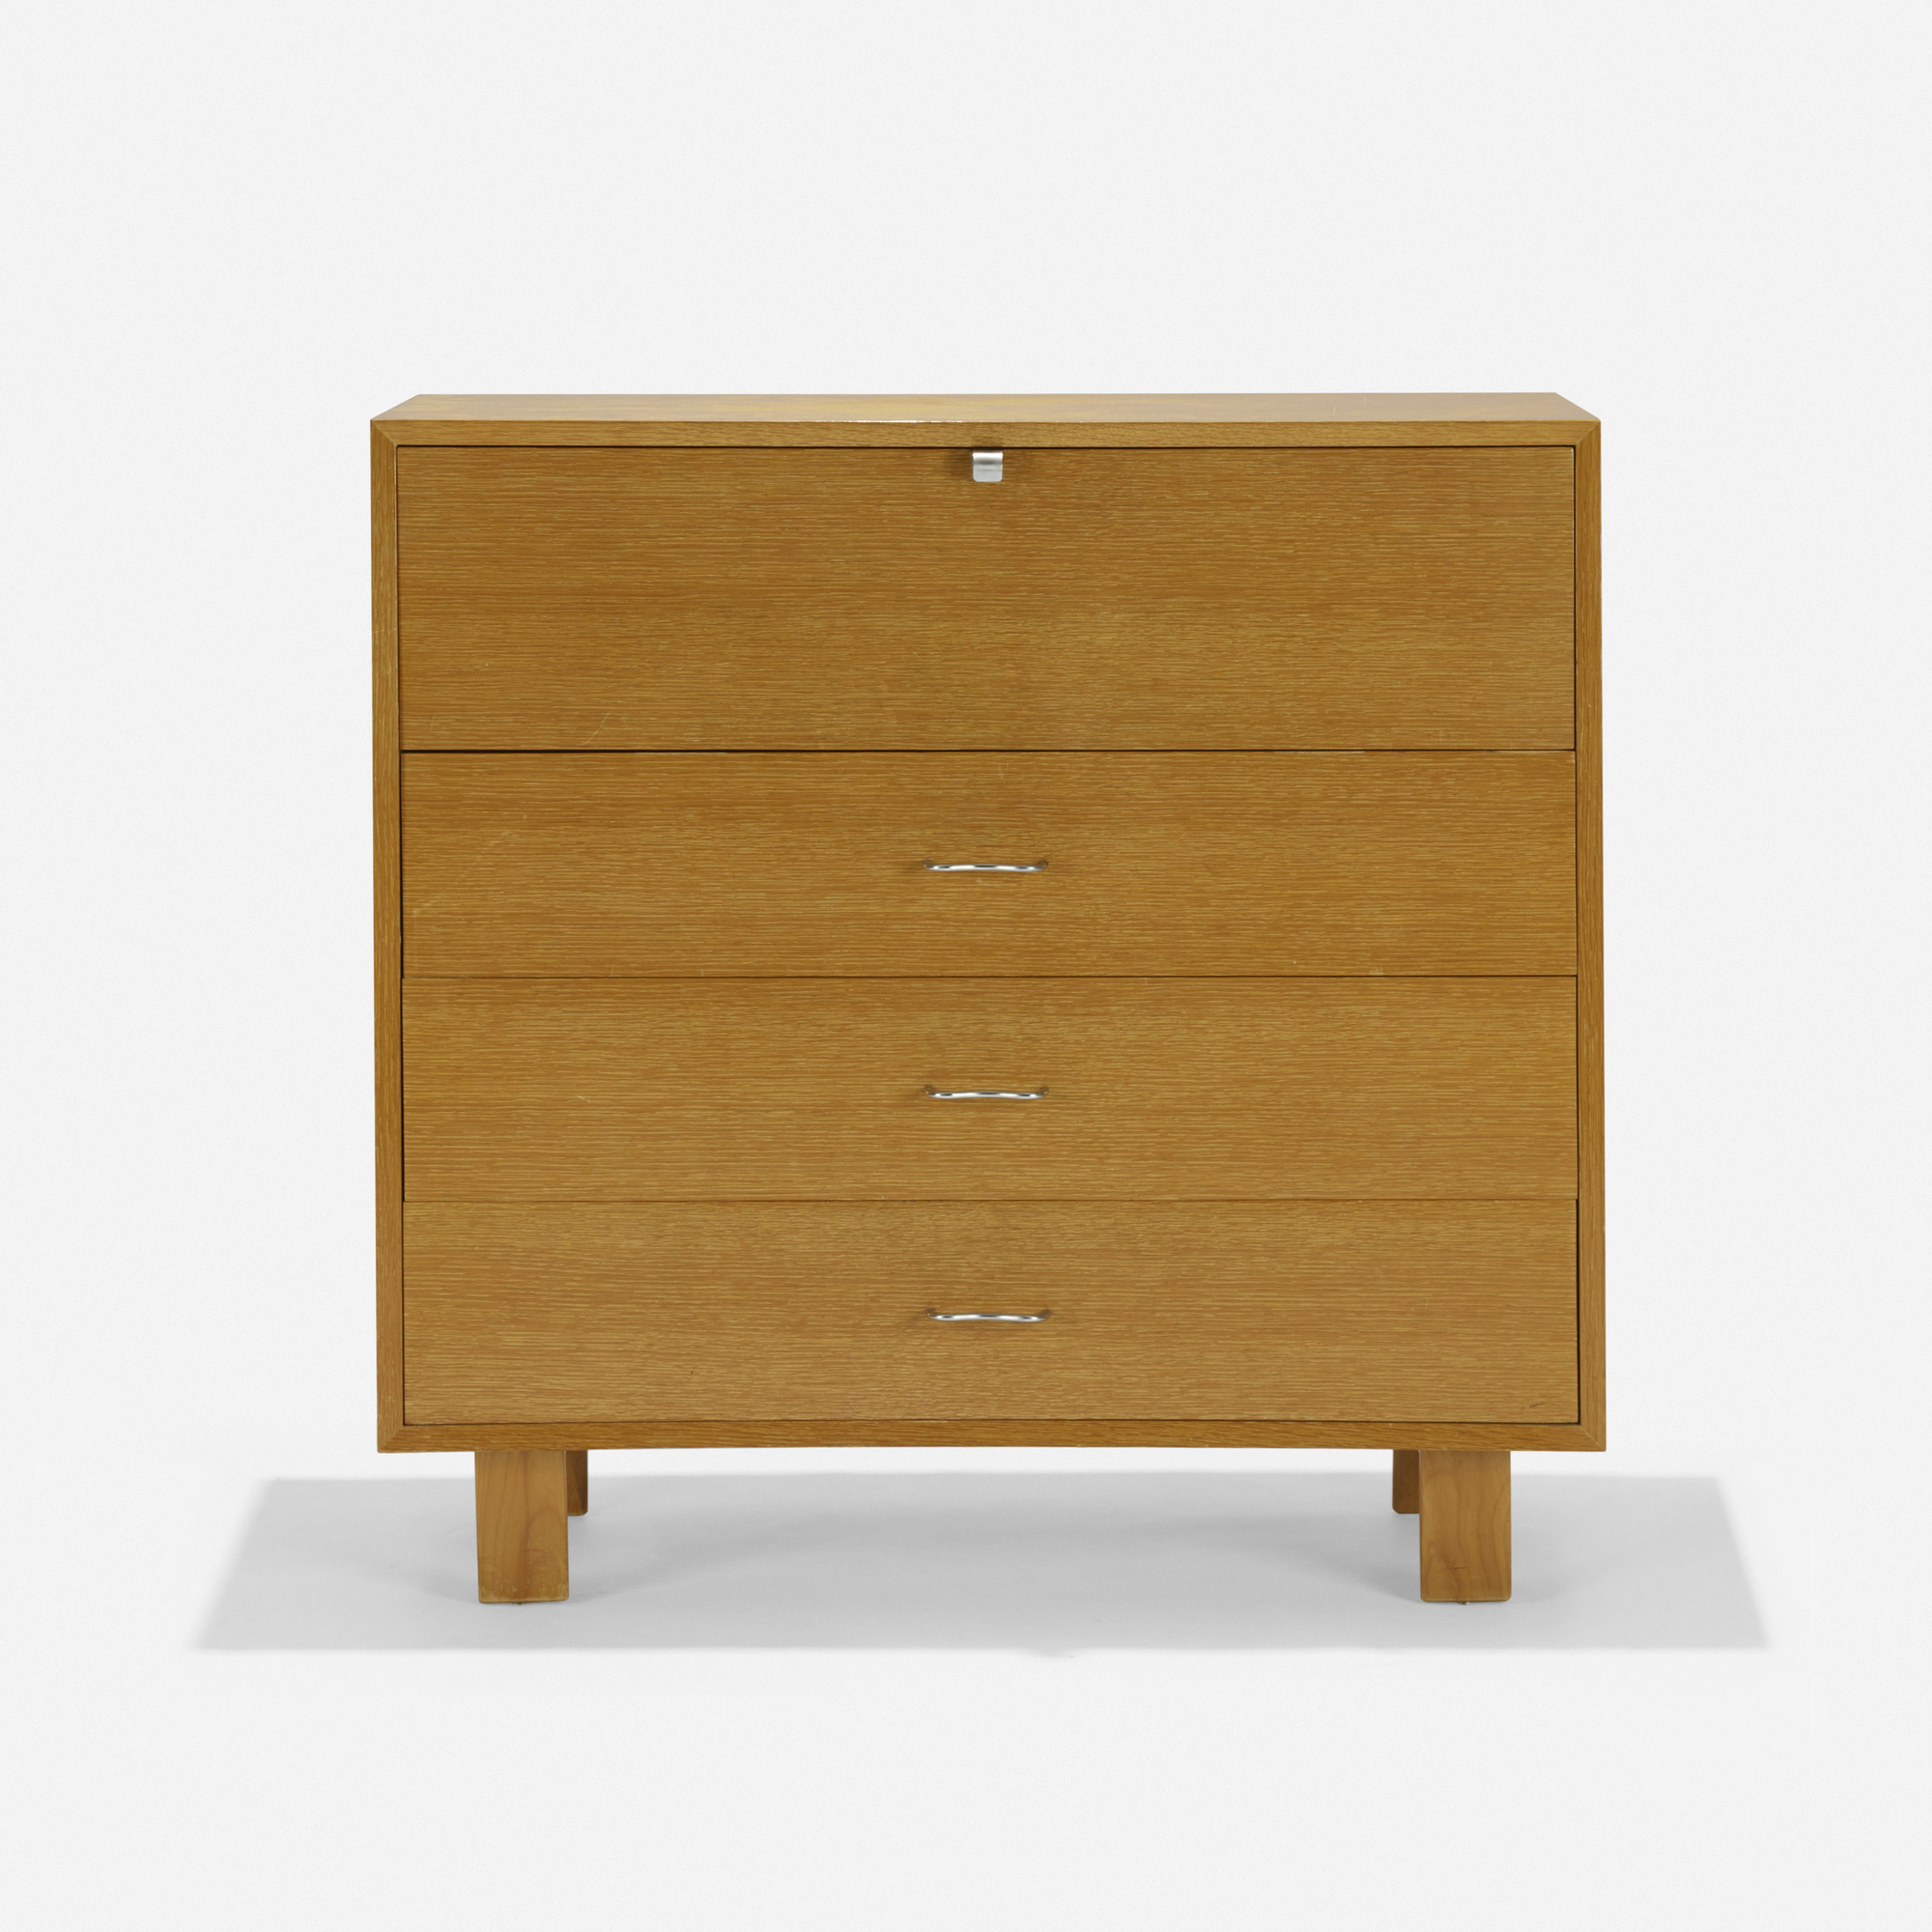 234: George Nelson & Associates / cabinet, model 4623 from the Basic Cabinet series (1 of 3)